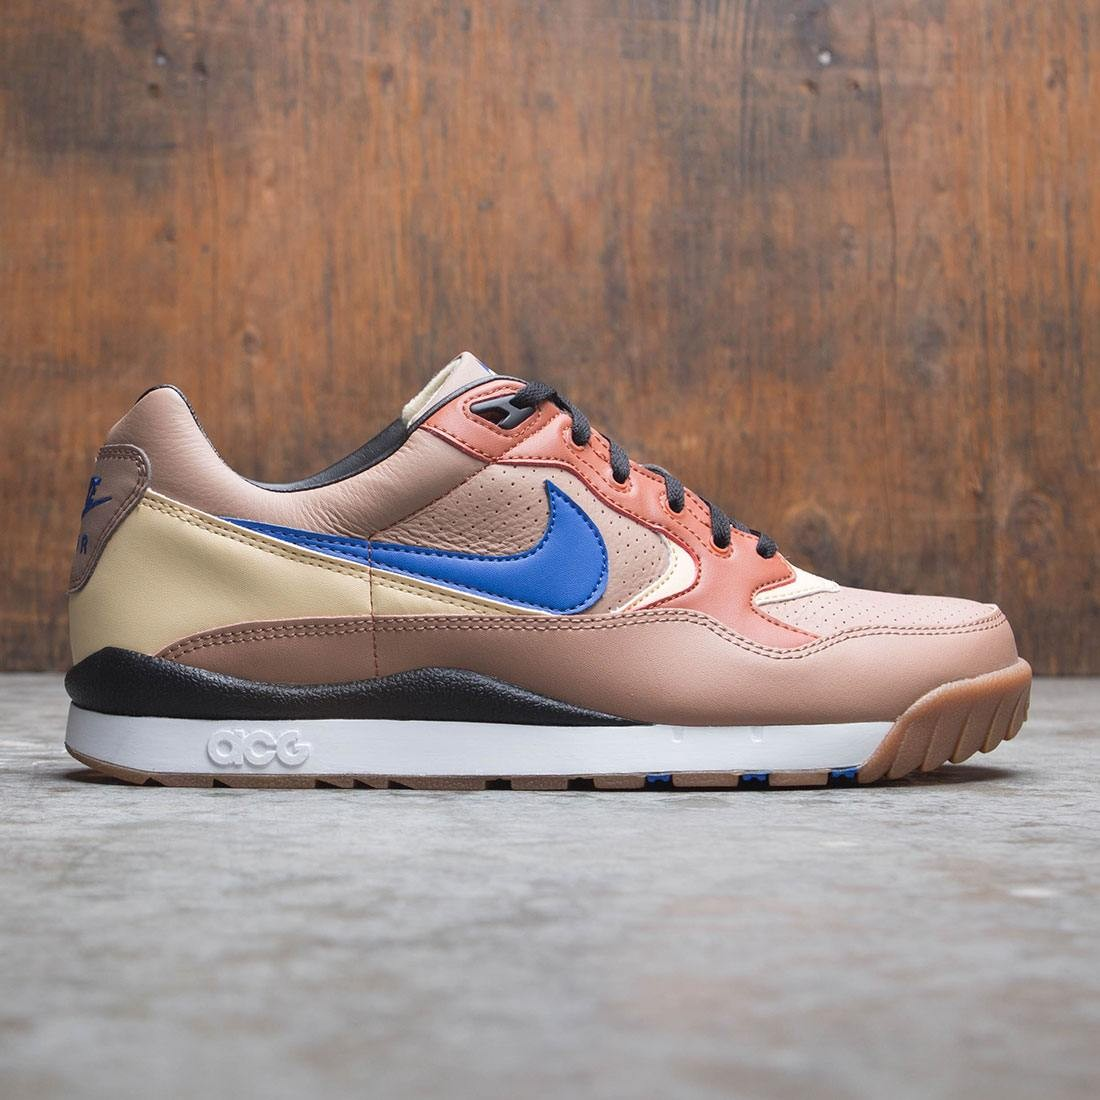 Nike Men Air Wildwood Acg (desert dust / game royal-dusty peach)